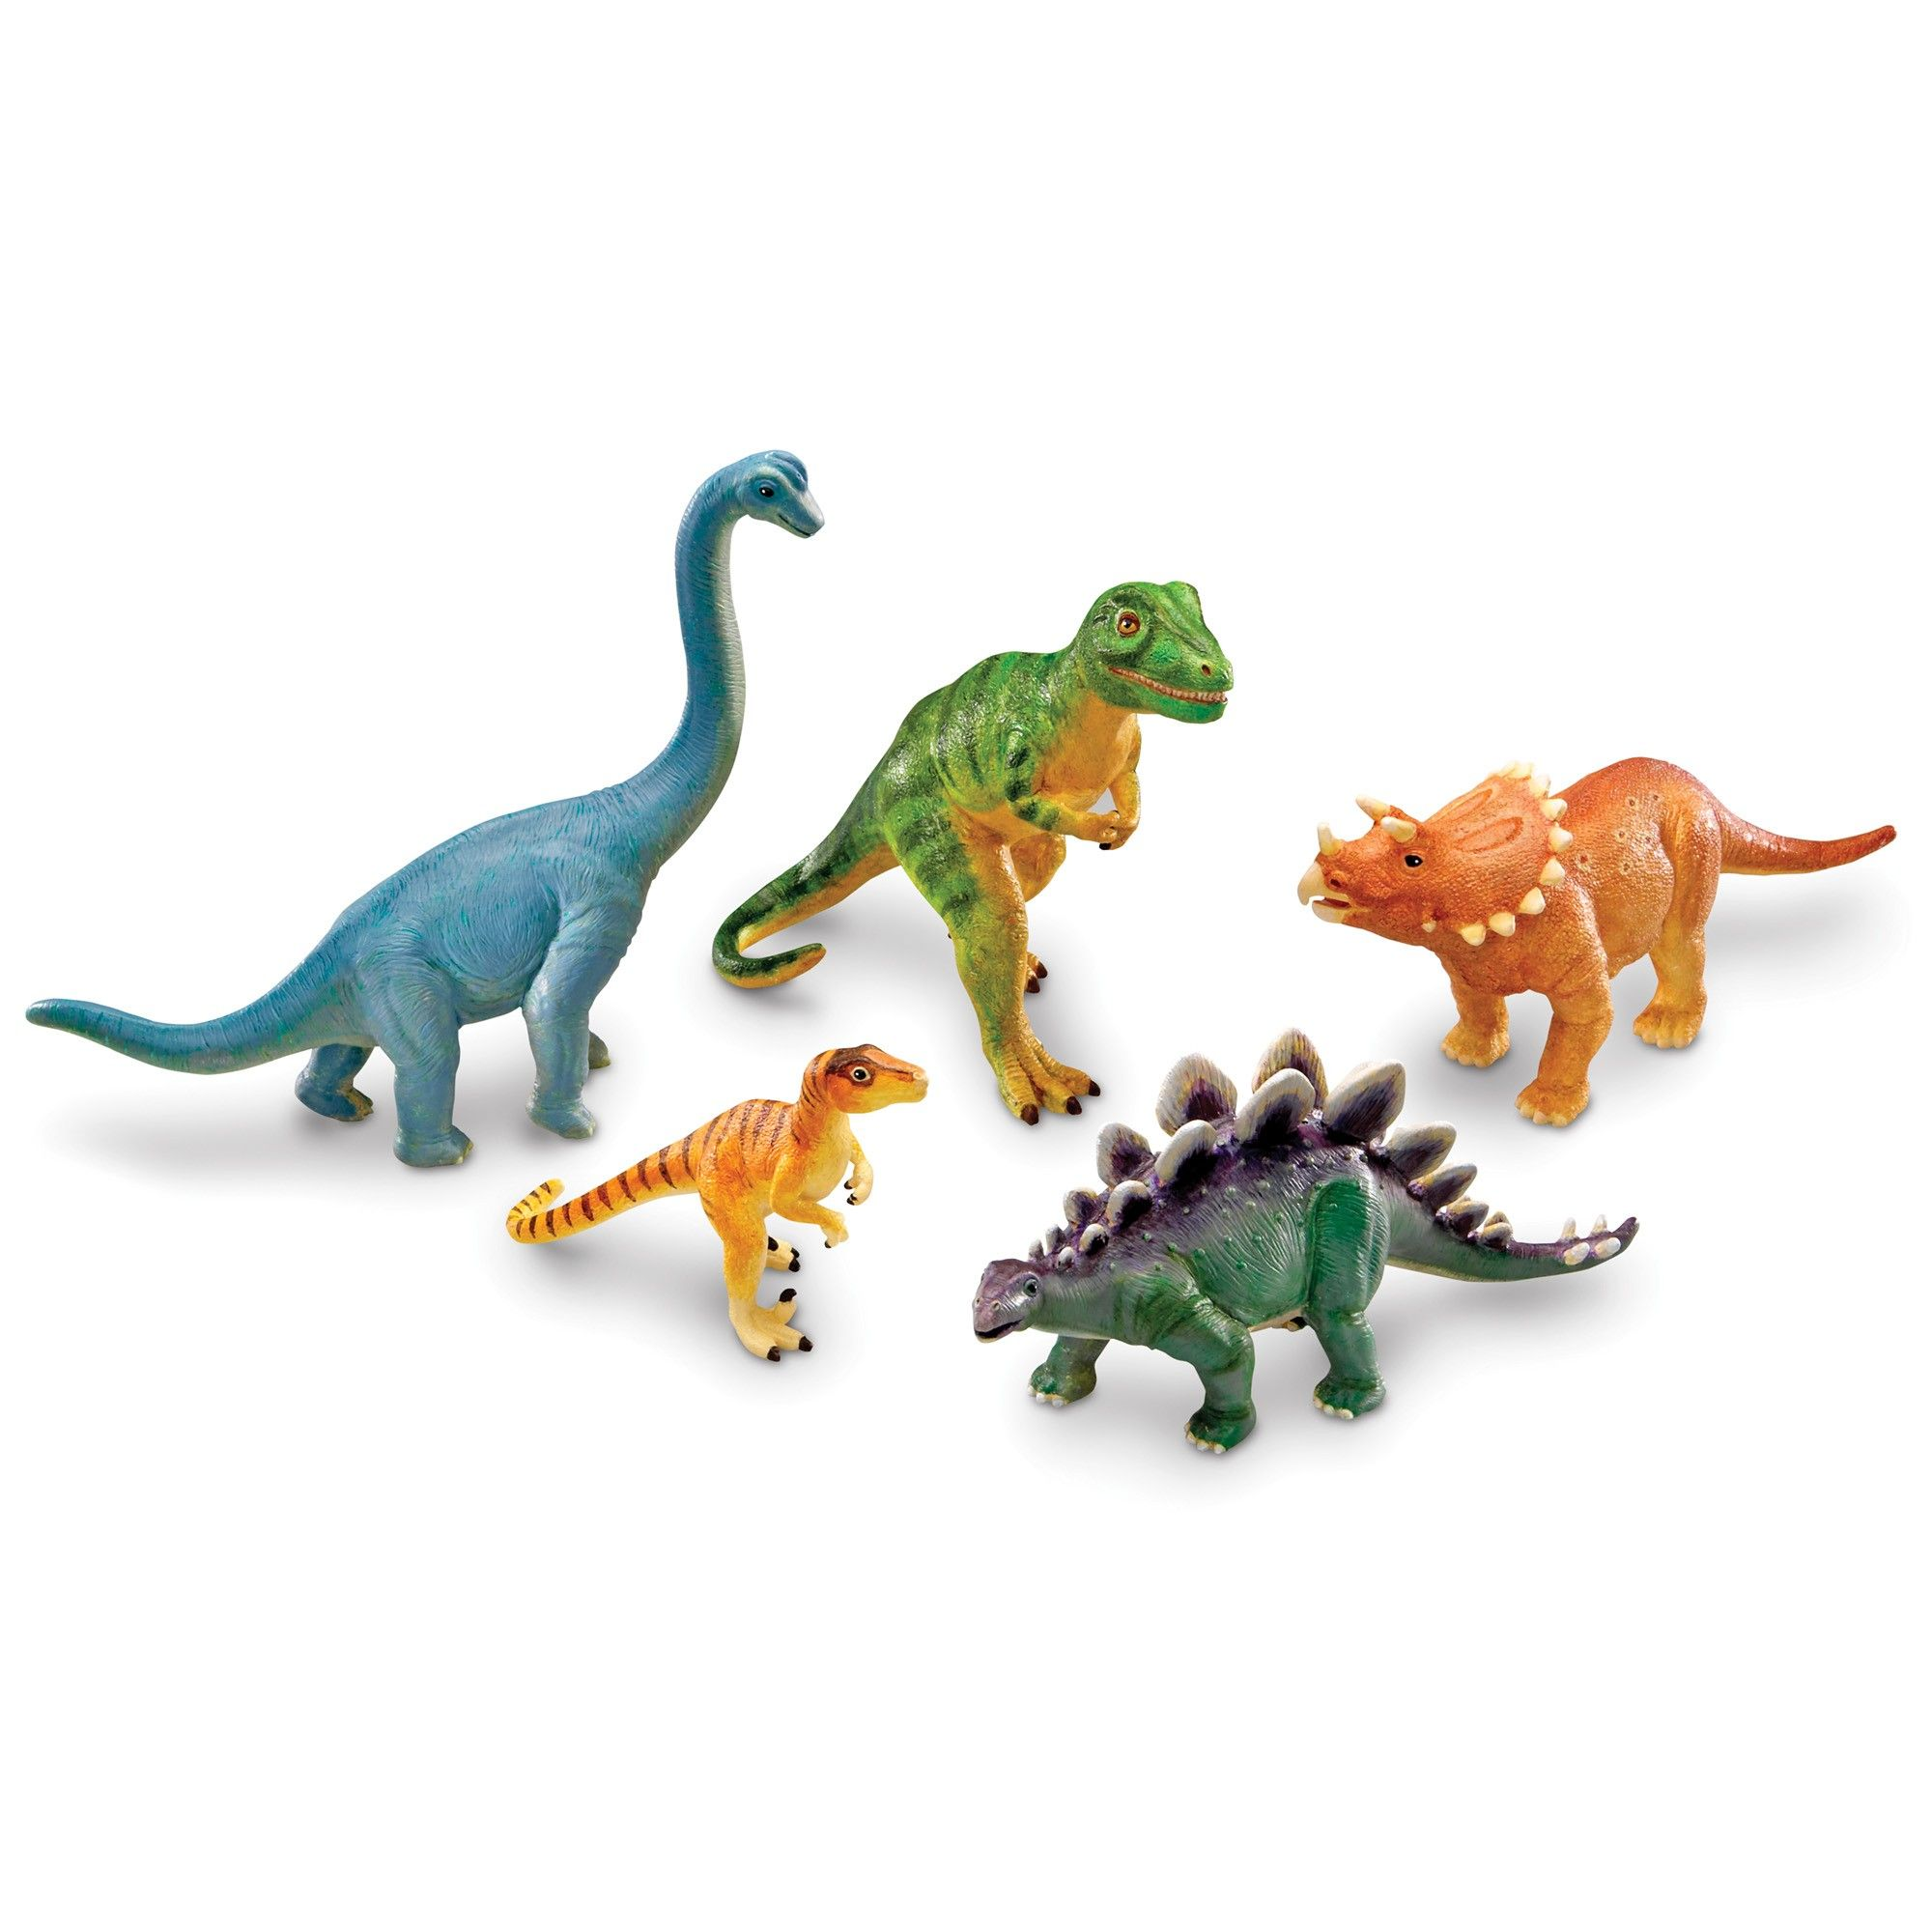 Learning Resources Jumbo Dinosaurs Dinosaur toys